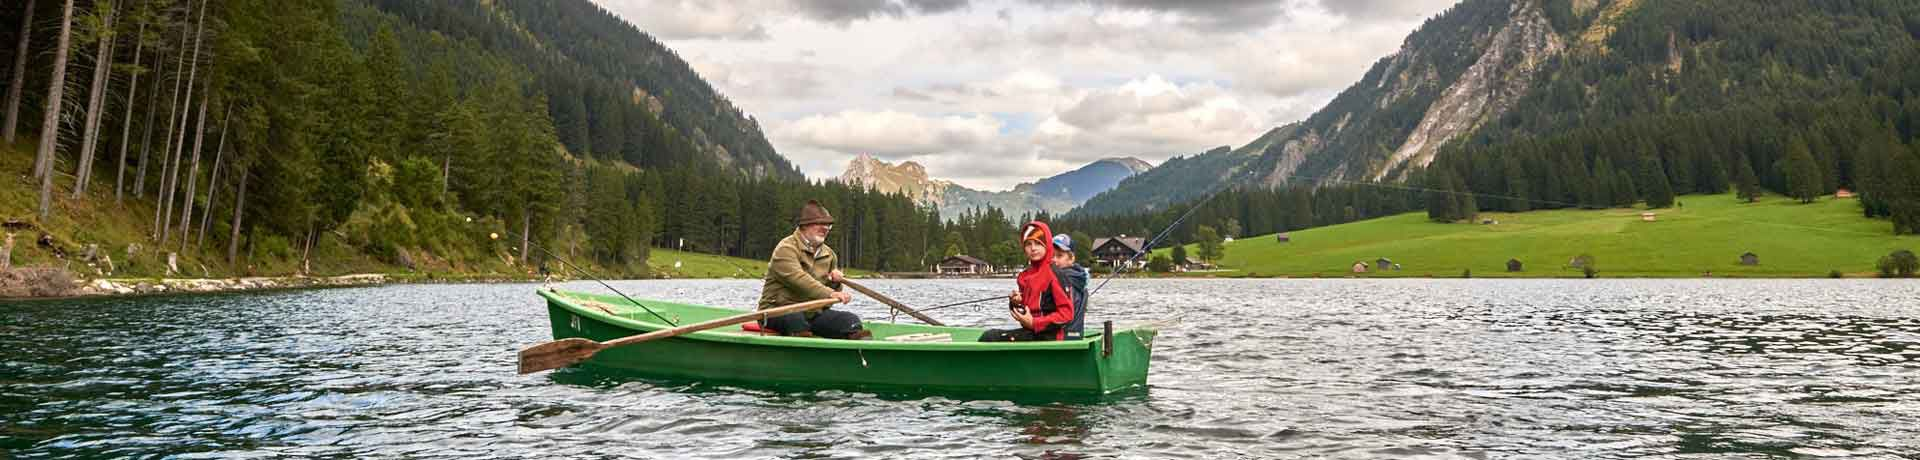 Fishing and angling on the Vilsalpsee in the Tannheimer Tal